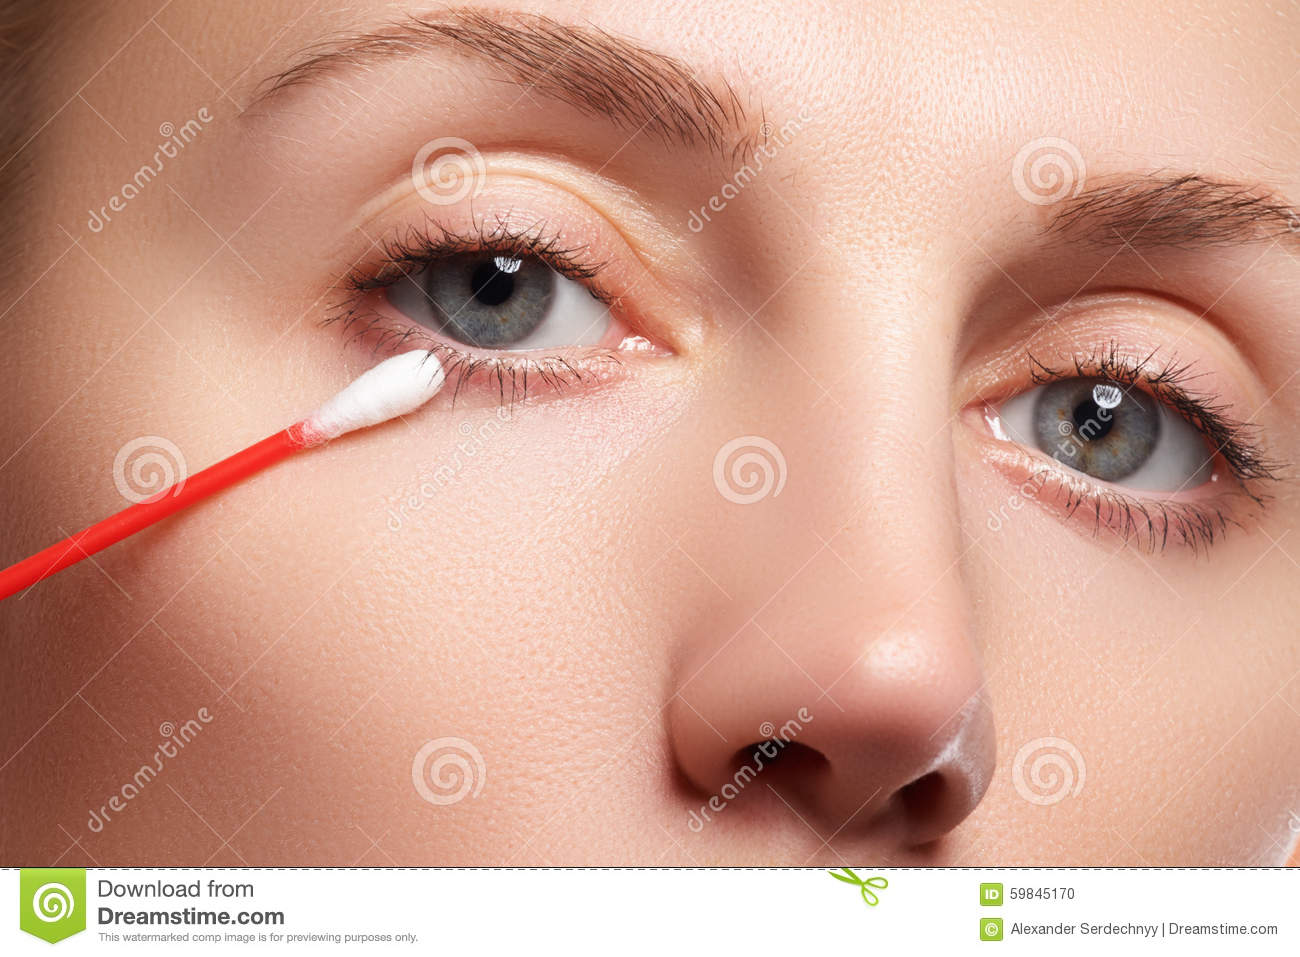 Skin care woman removing face makeup with cotton swab. Skin care concept. Caucasian model with perfect skin. Beauty & Spa.